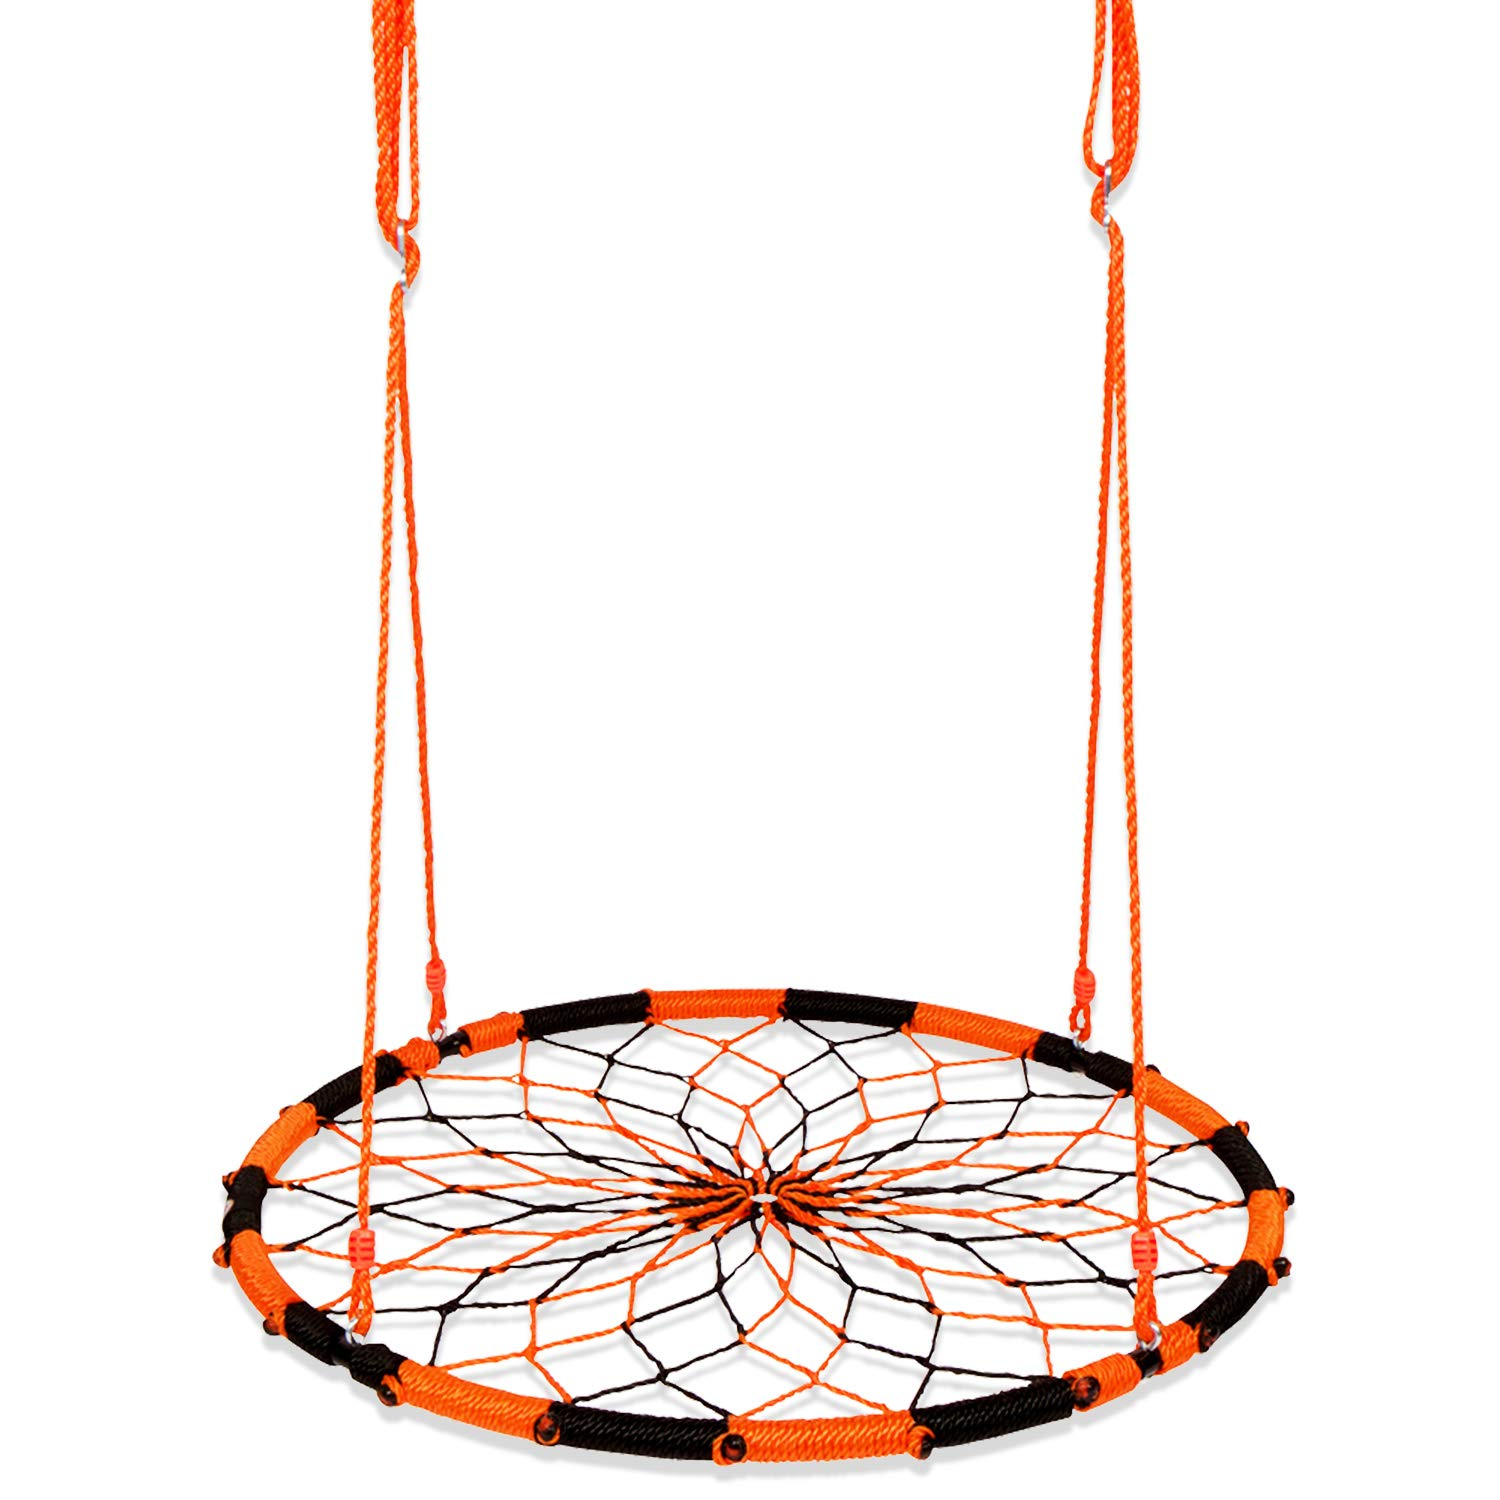 Nest Swing | 40'' Nest Swing For Kids Has Been Safety Tested | Sturdy & Fun Tree Swing For Children | Industrial-Grade Toddler Swing | Easy-To-Assemble Kids Swing